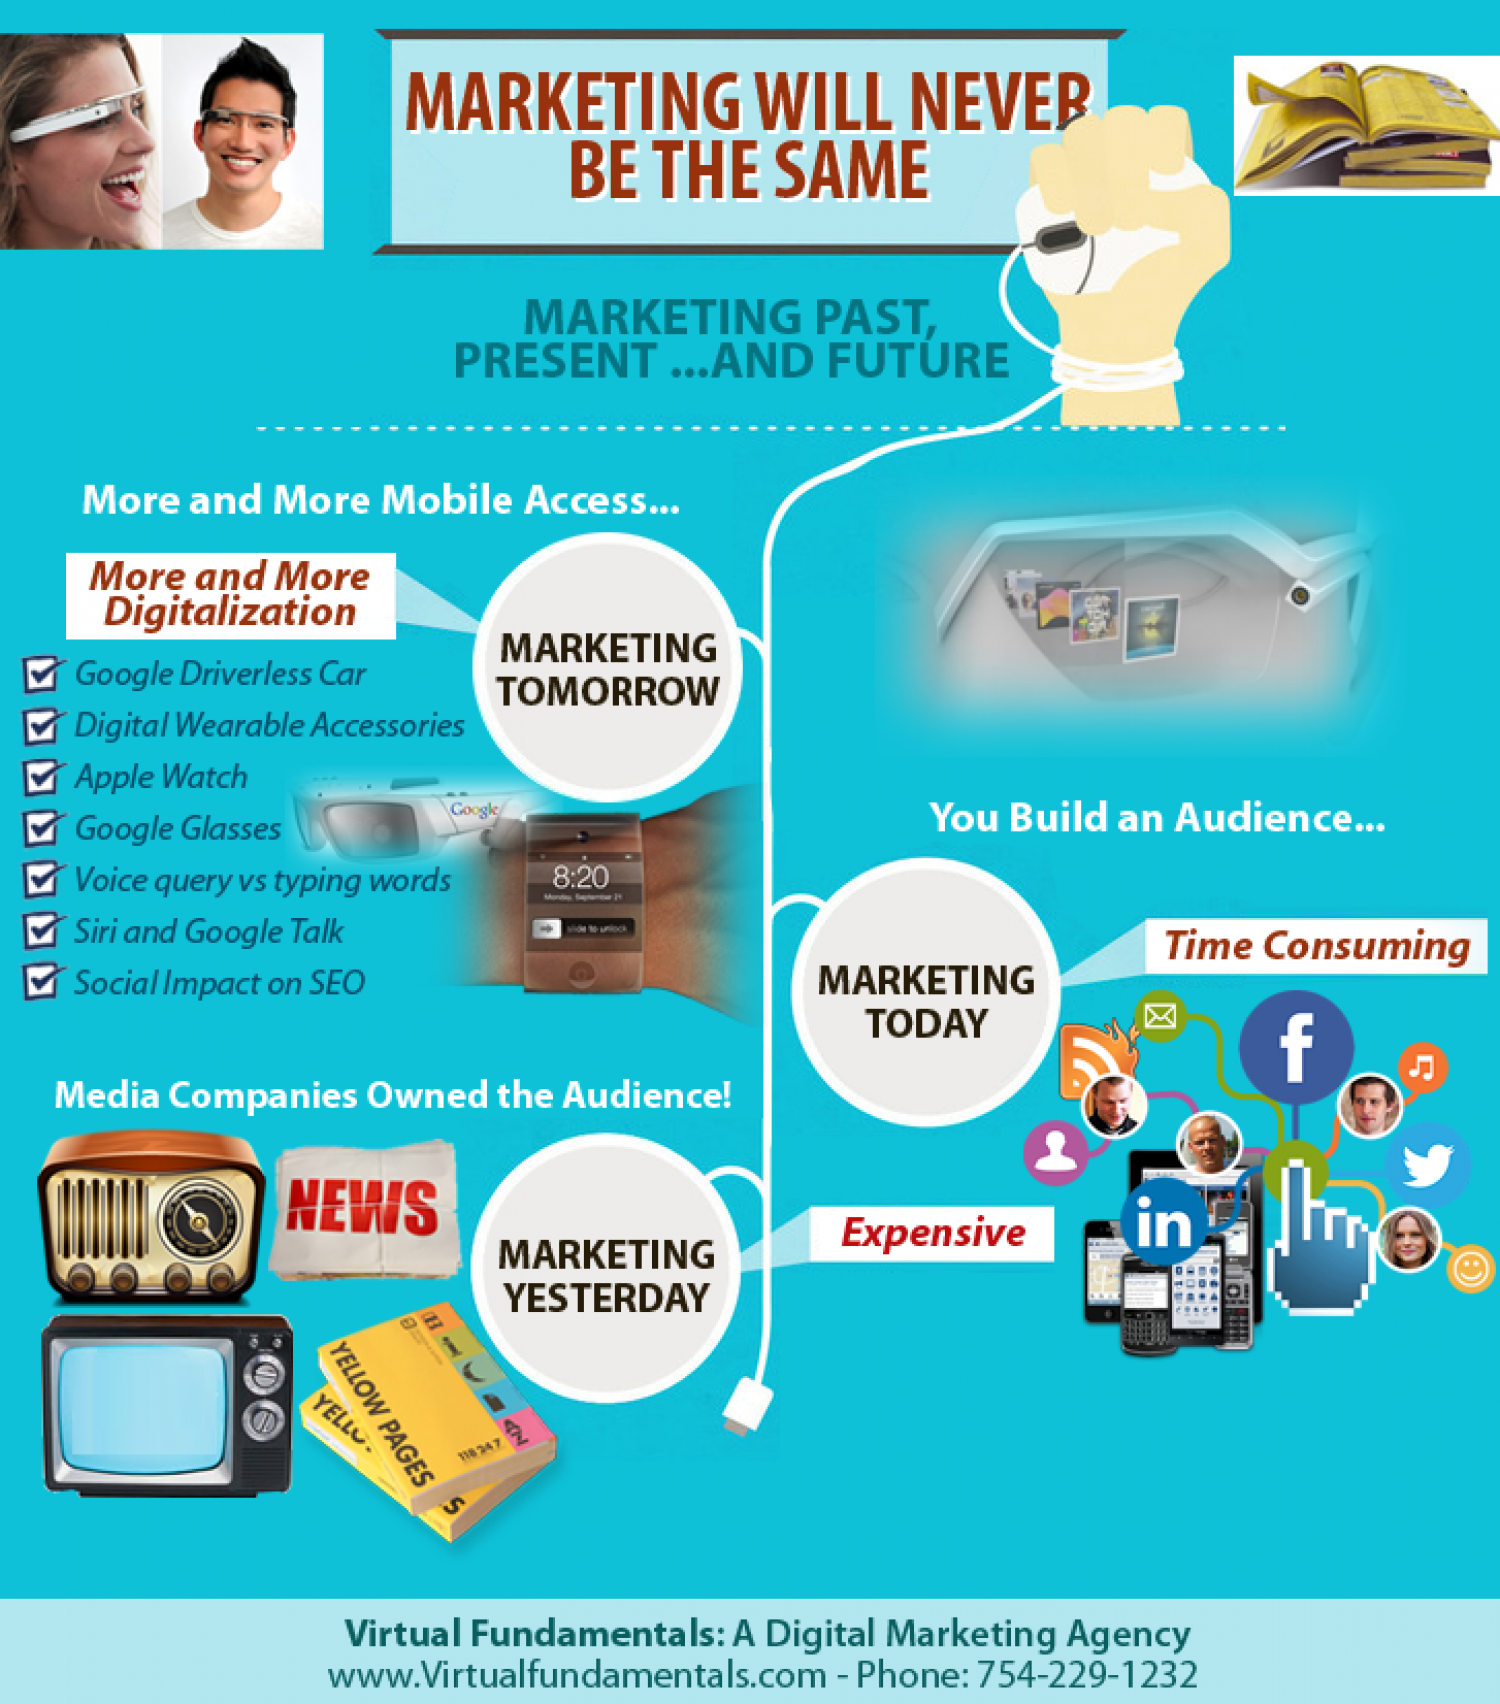 Marketing Past, Present and Future Infographic